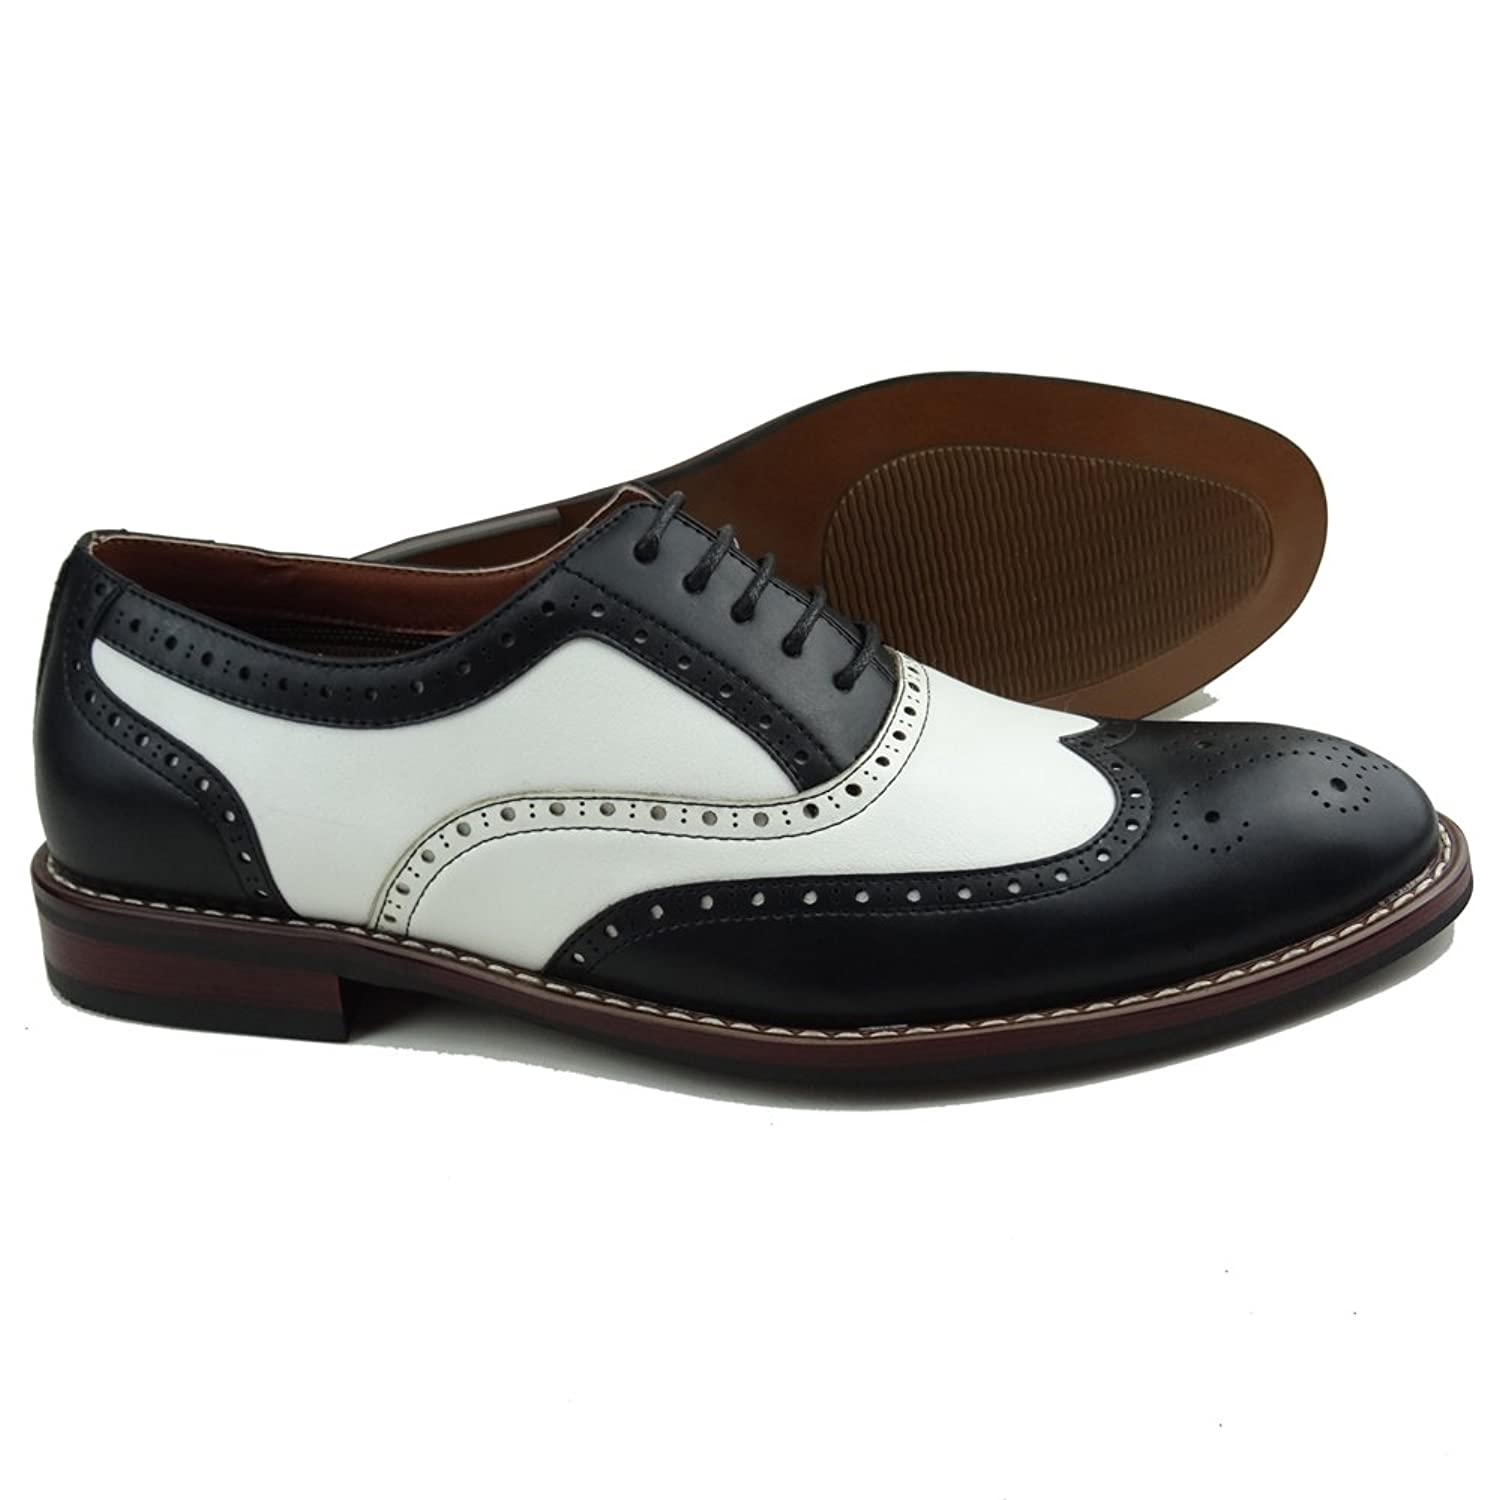 1960s Menswear Clothing & Fashion Ideas  Mens Black White Lace Up Wing Tip Perforated Oxford Dress Shoes $34.99 AT vintagedancer.com